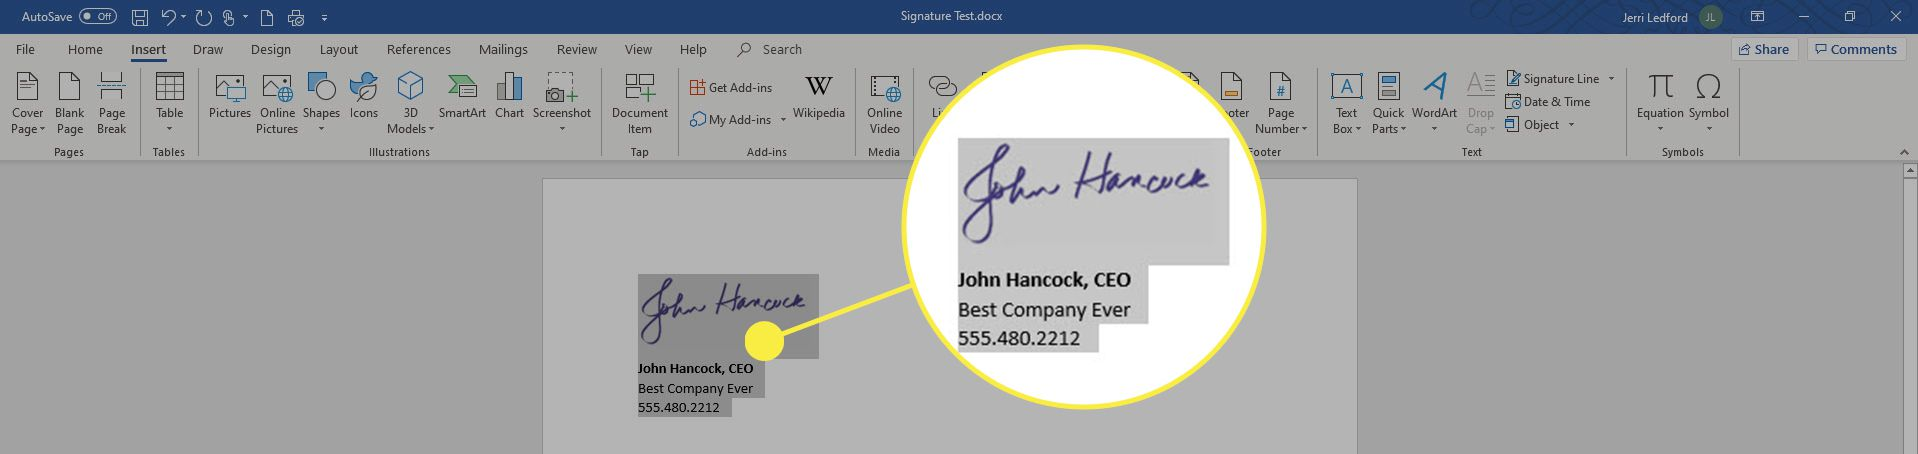 How to insert a signature into microsoft word